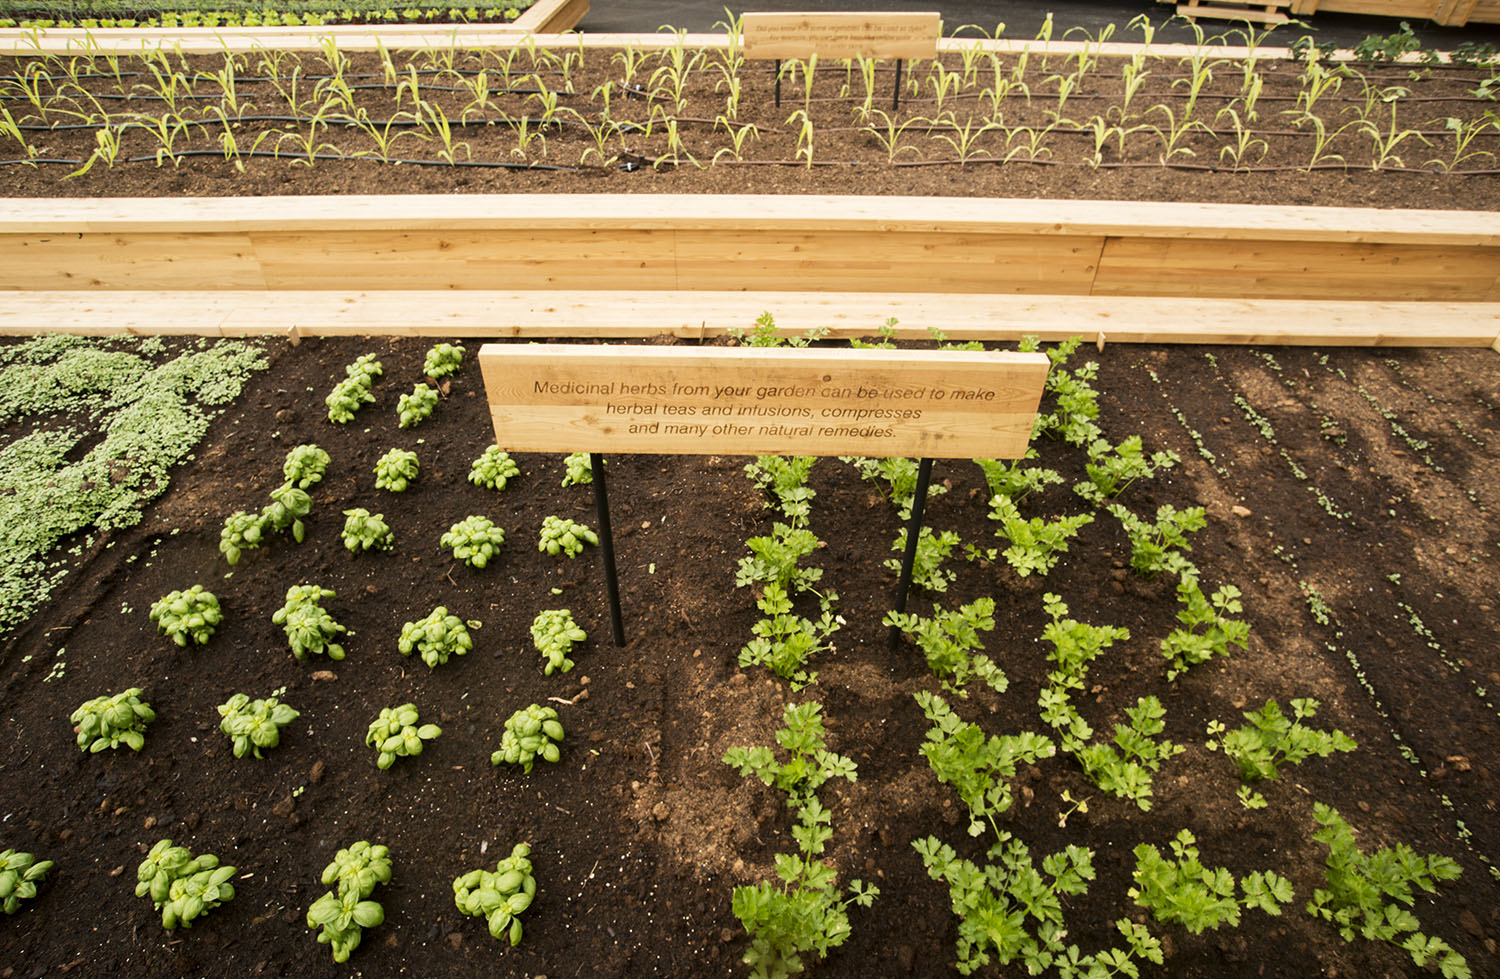 Making your own vegetable garden at home: seven tips from seed to harvest -  Slow Food International